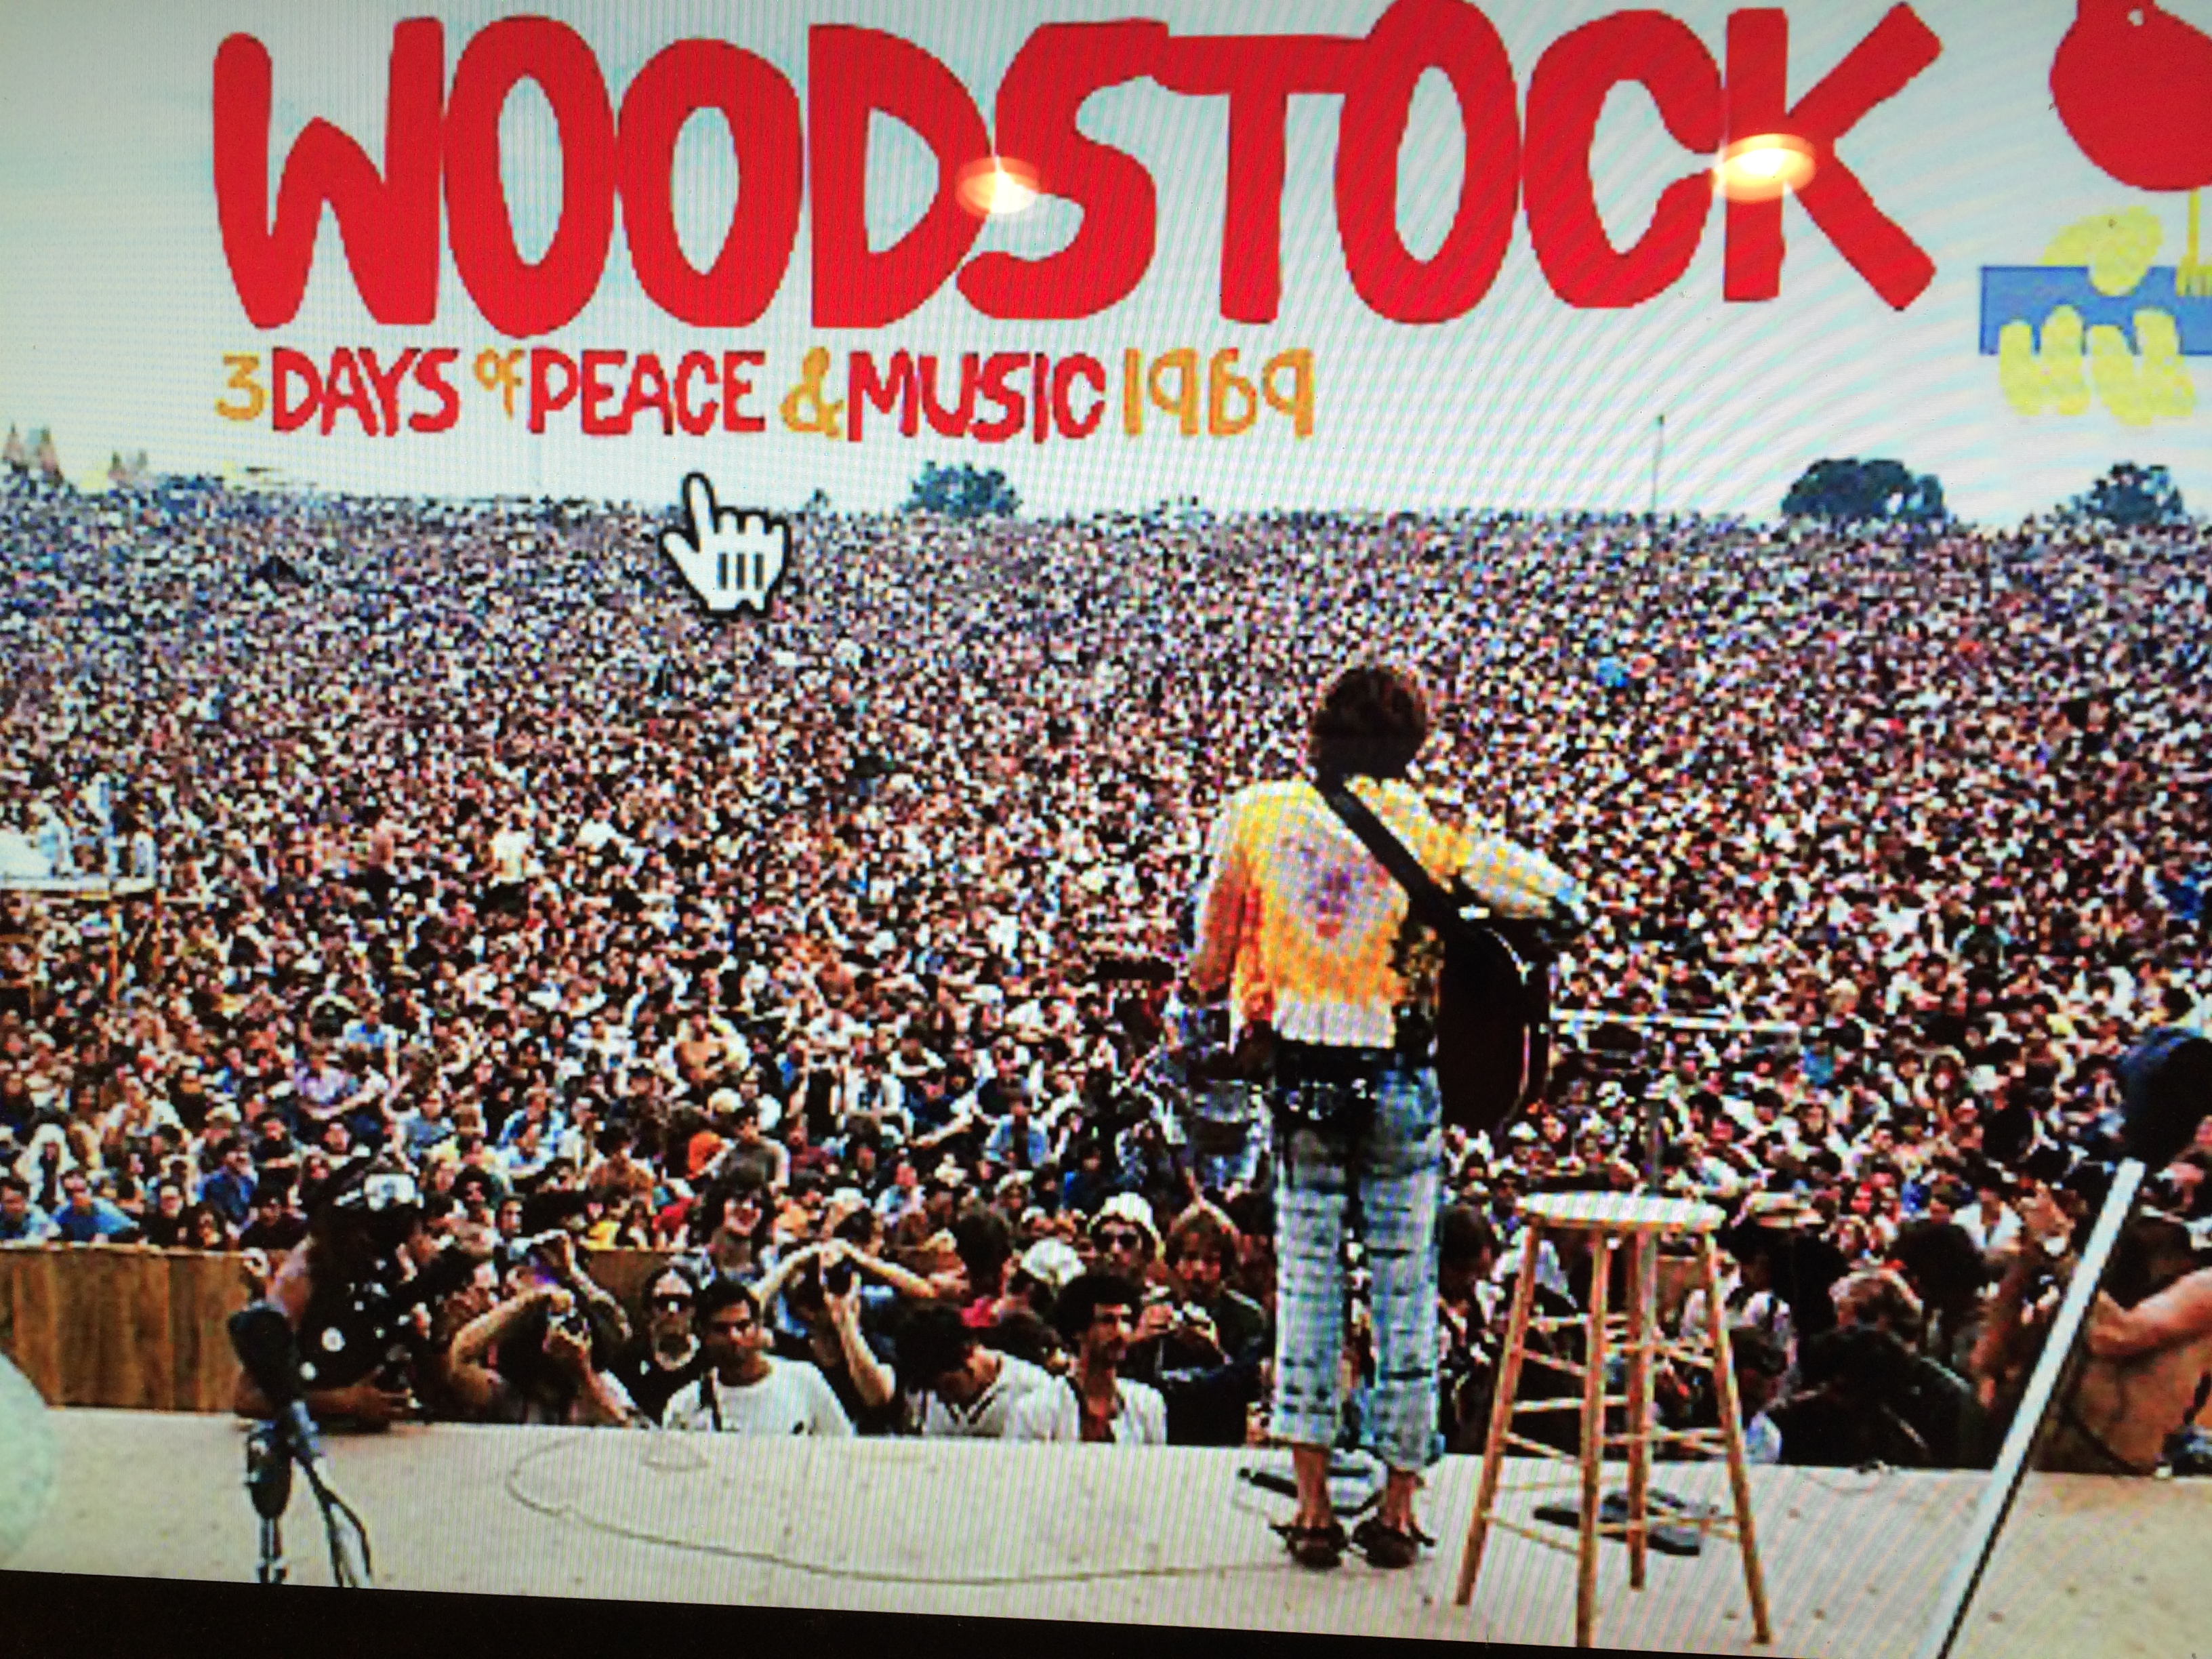 Woodstock - A 50th Anniversary Celebration